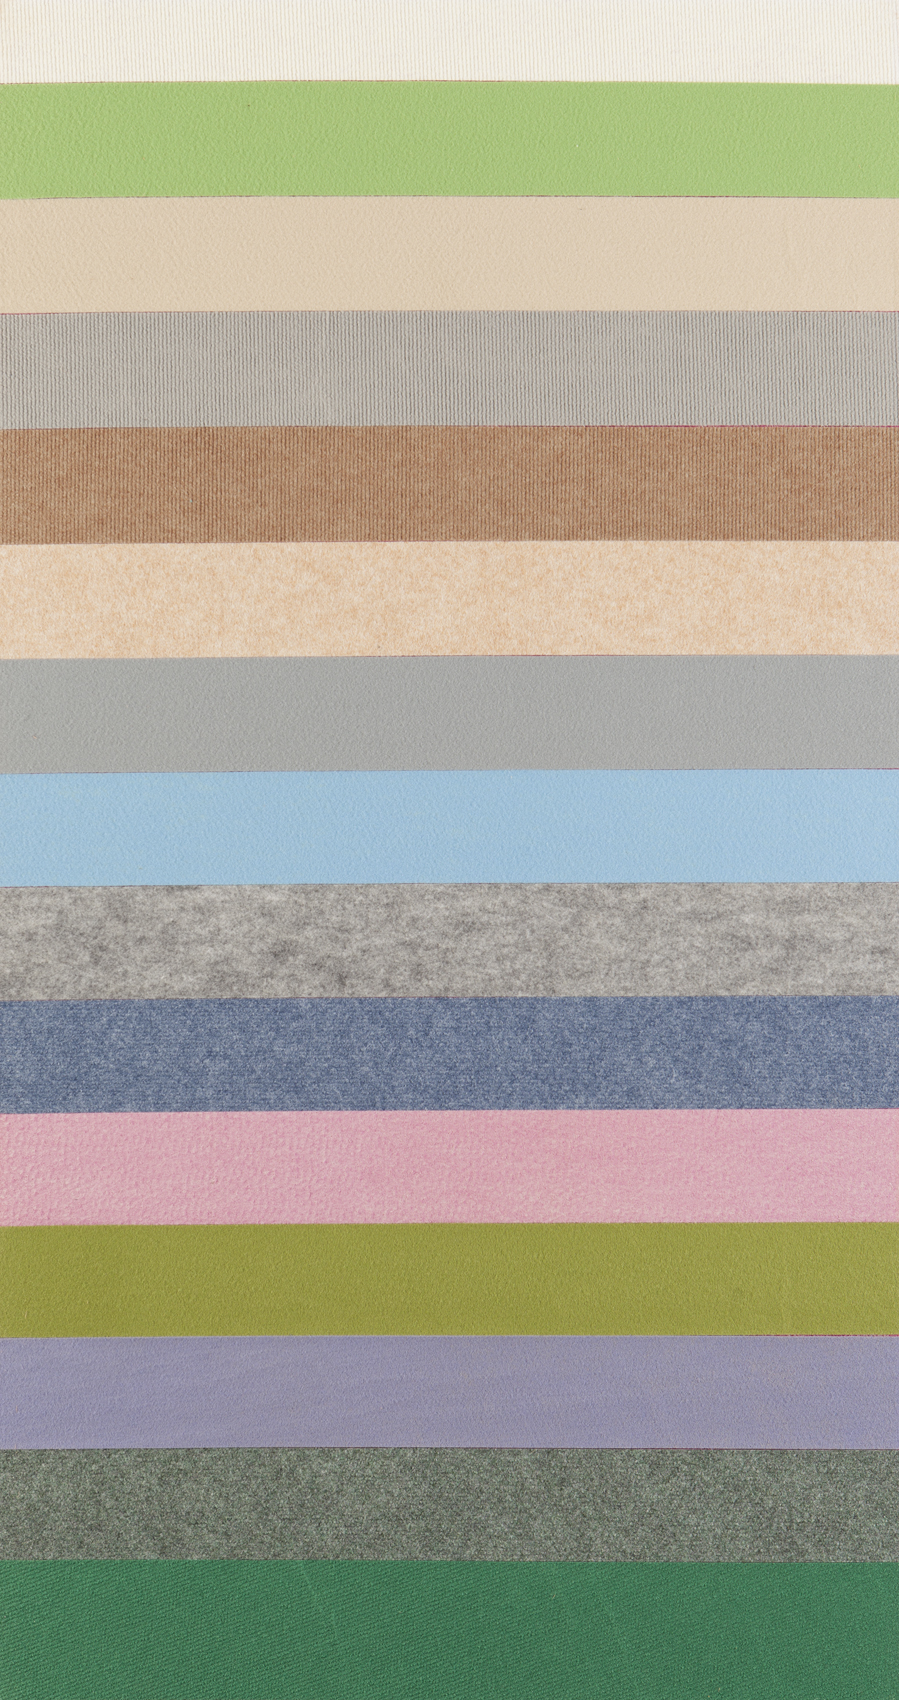 Gal Weinstein   Untitled  2016 Wall-to-wall carpet on plywood 150 x 80 cm